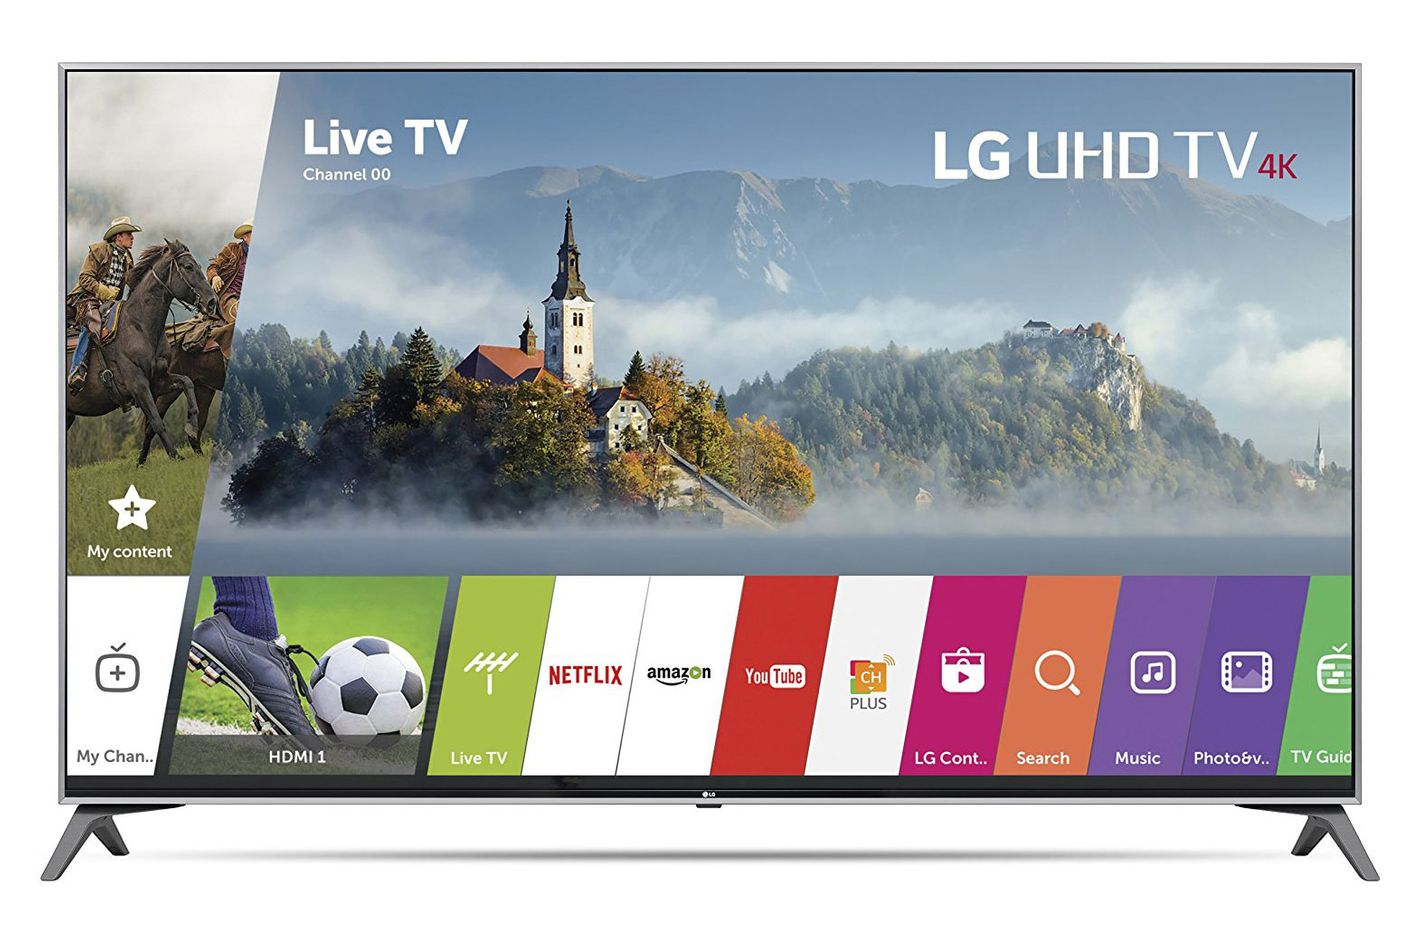 LG Electronics 60-inch 4K Ultra High-Definition Smart TV